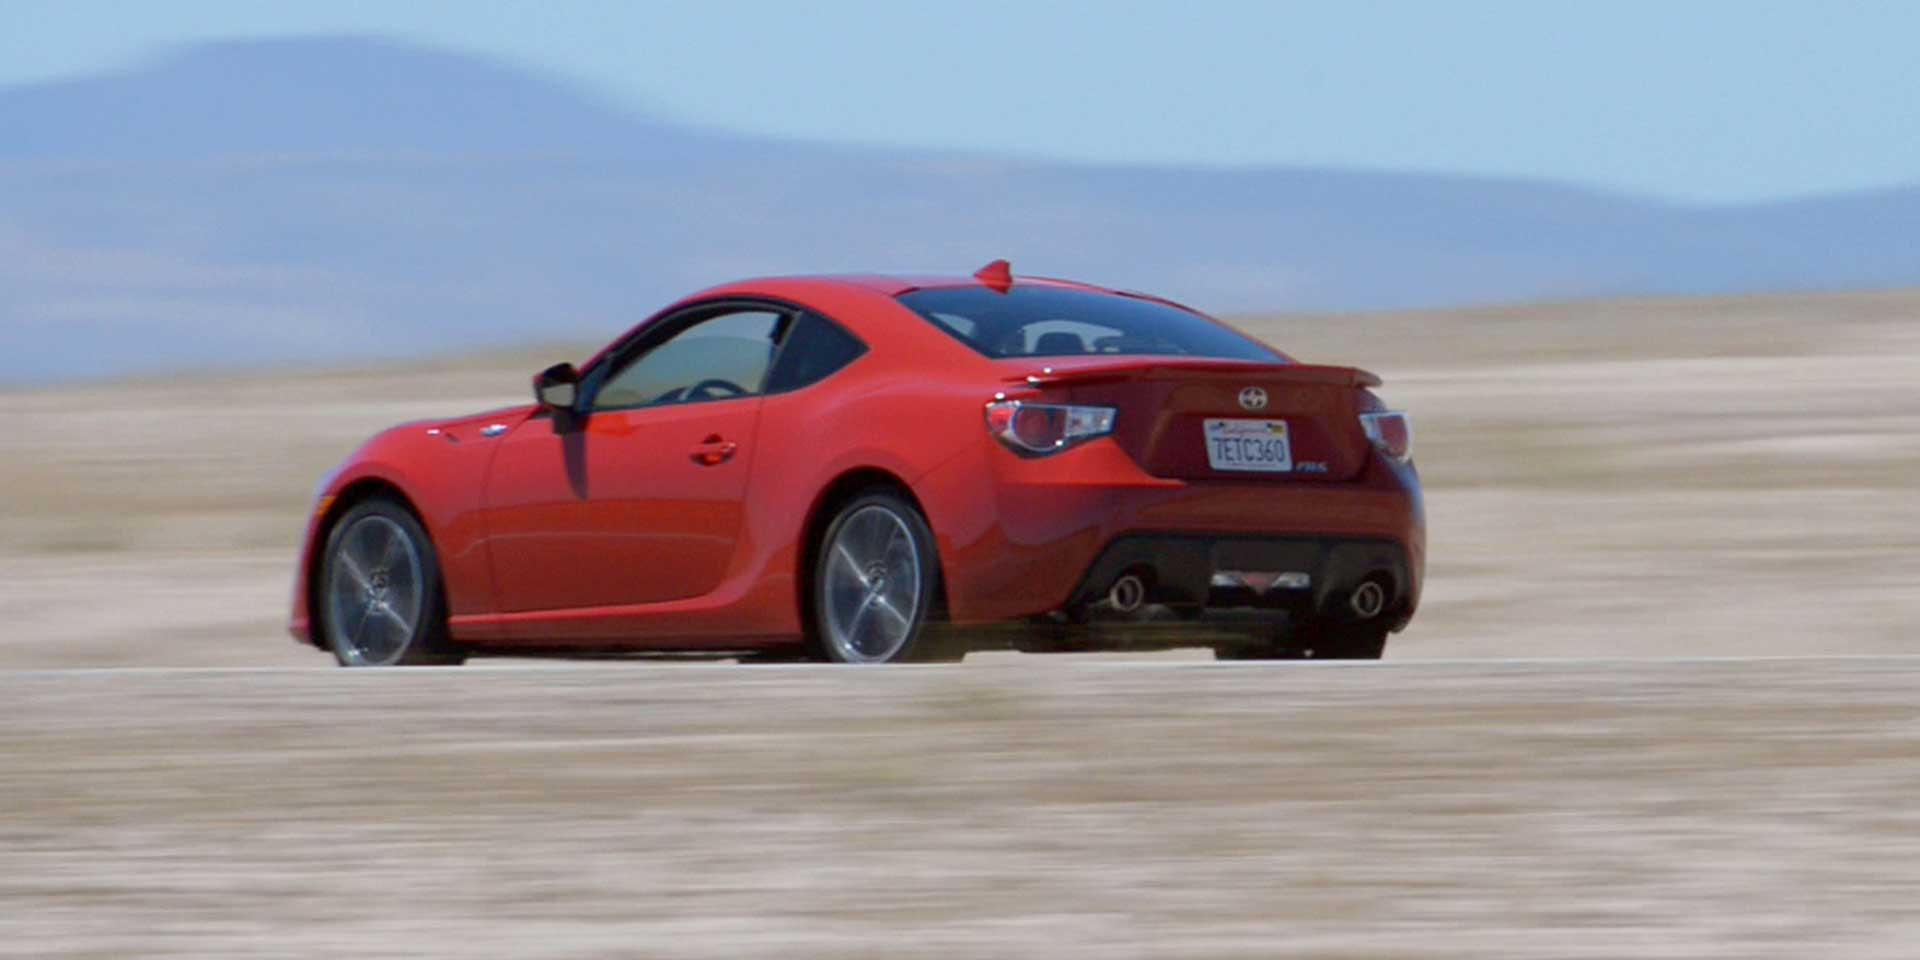 Used Cars For Sale New Cars For Sale Car Dealers Cars Chicago - Sports cars 5 letters